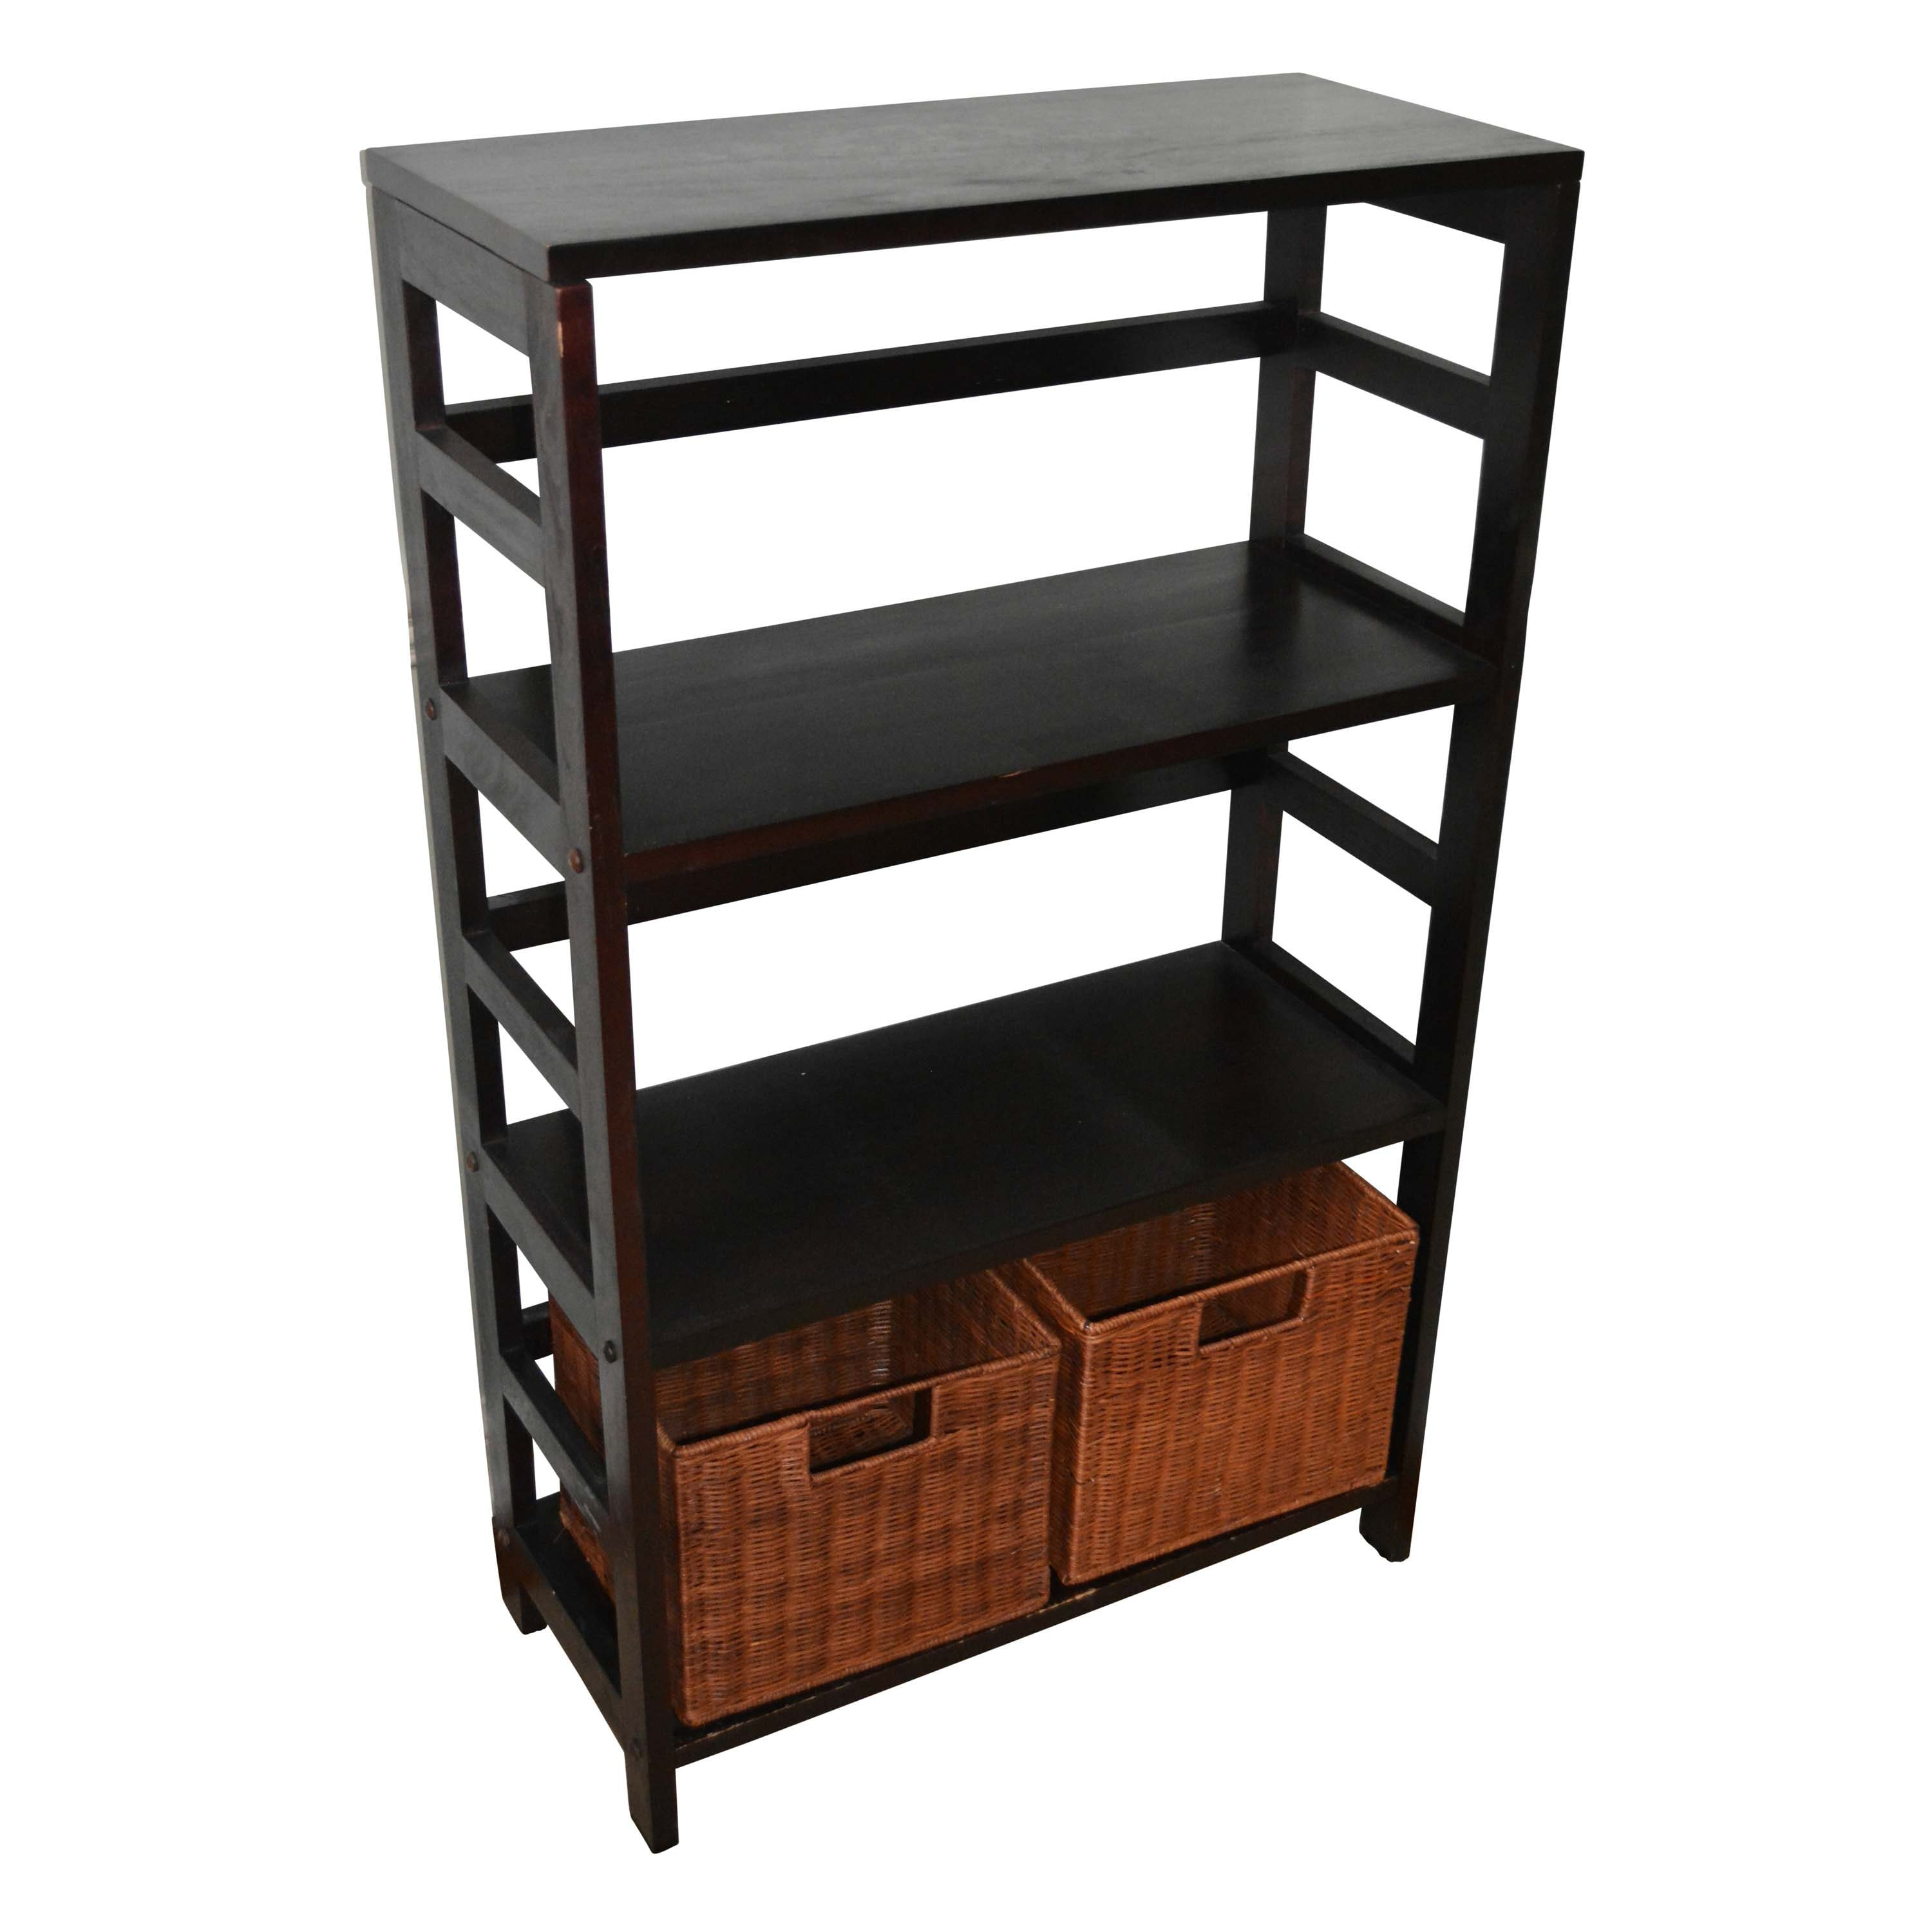 Open Shelving Unit with Two Baskets